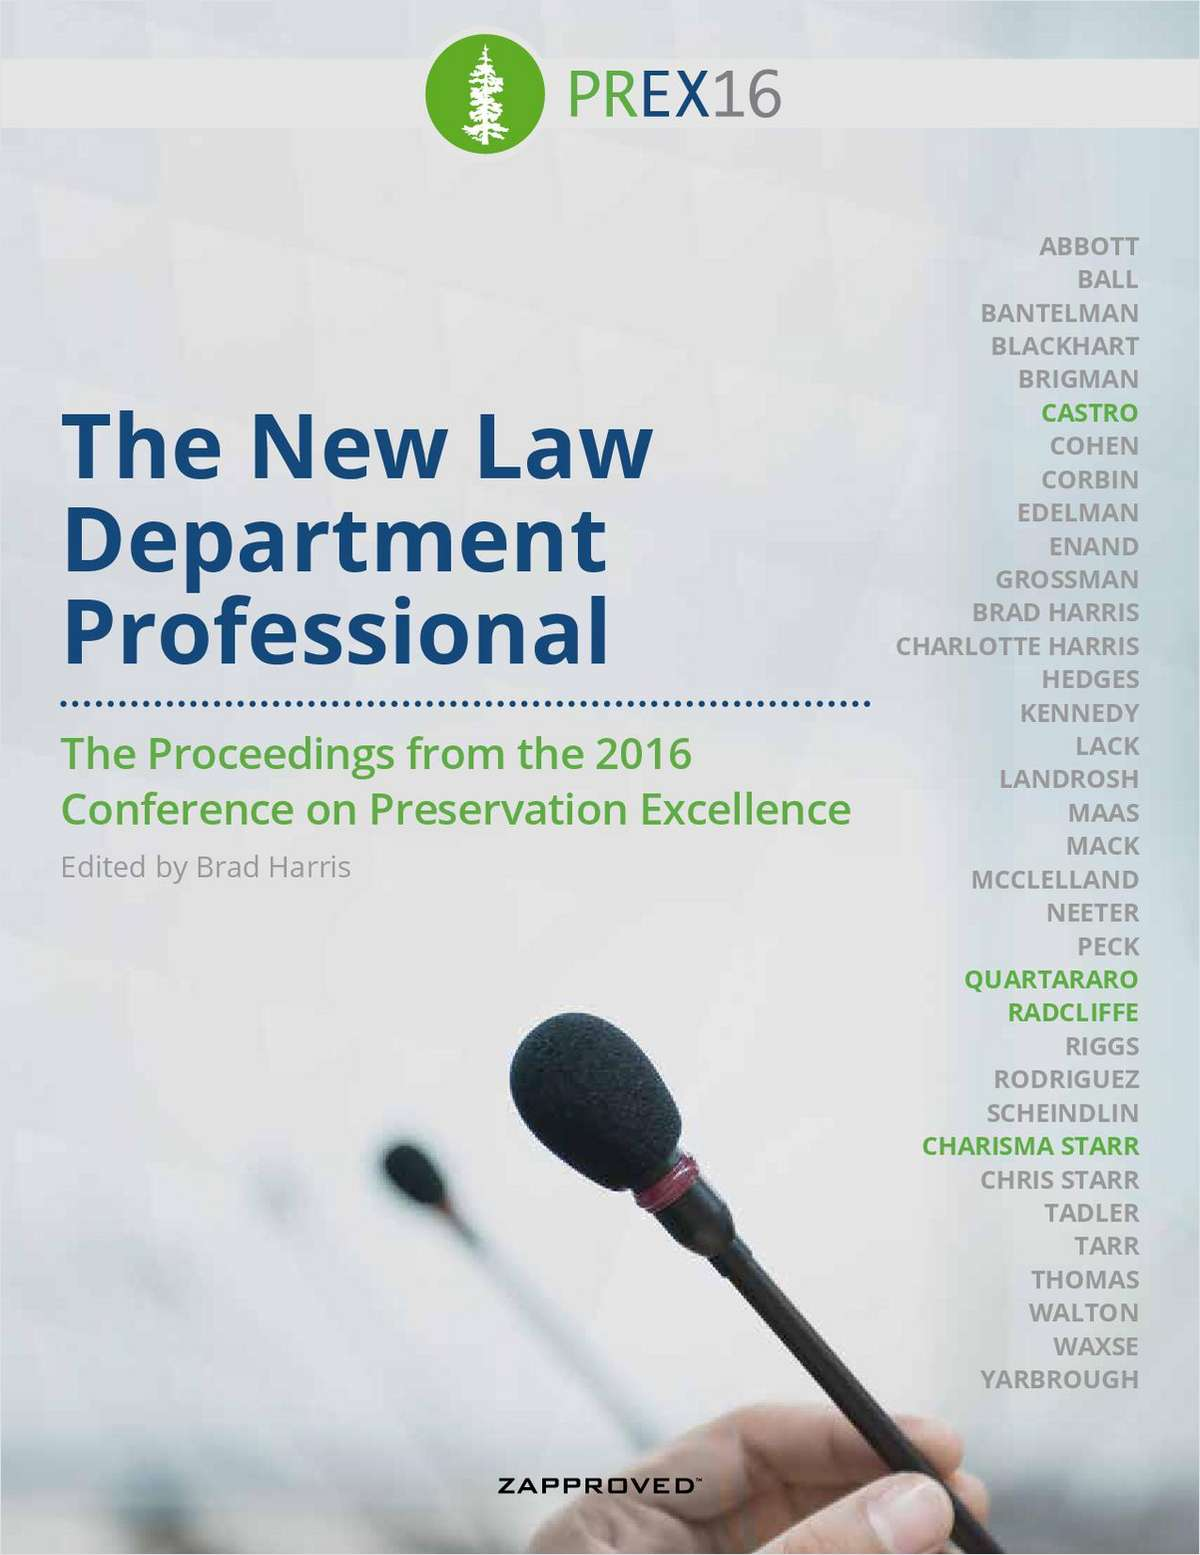 PREX 2016 Practical - The New Law Department Professional